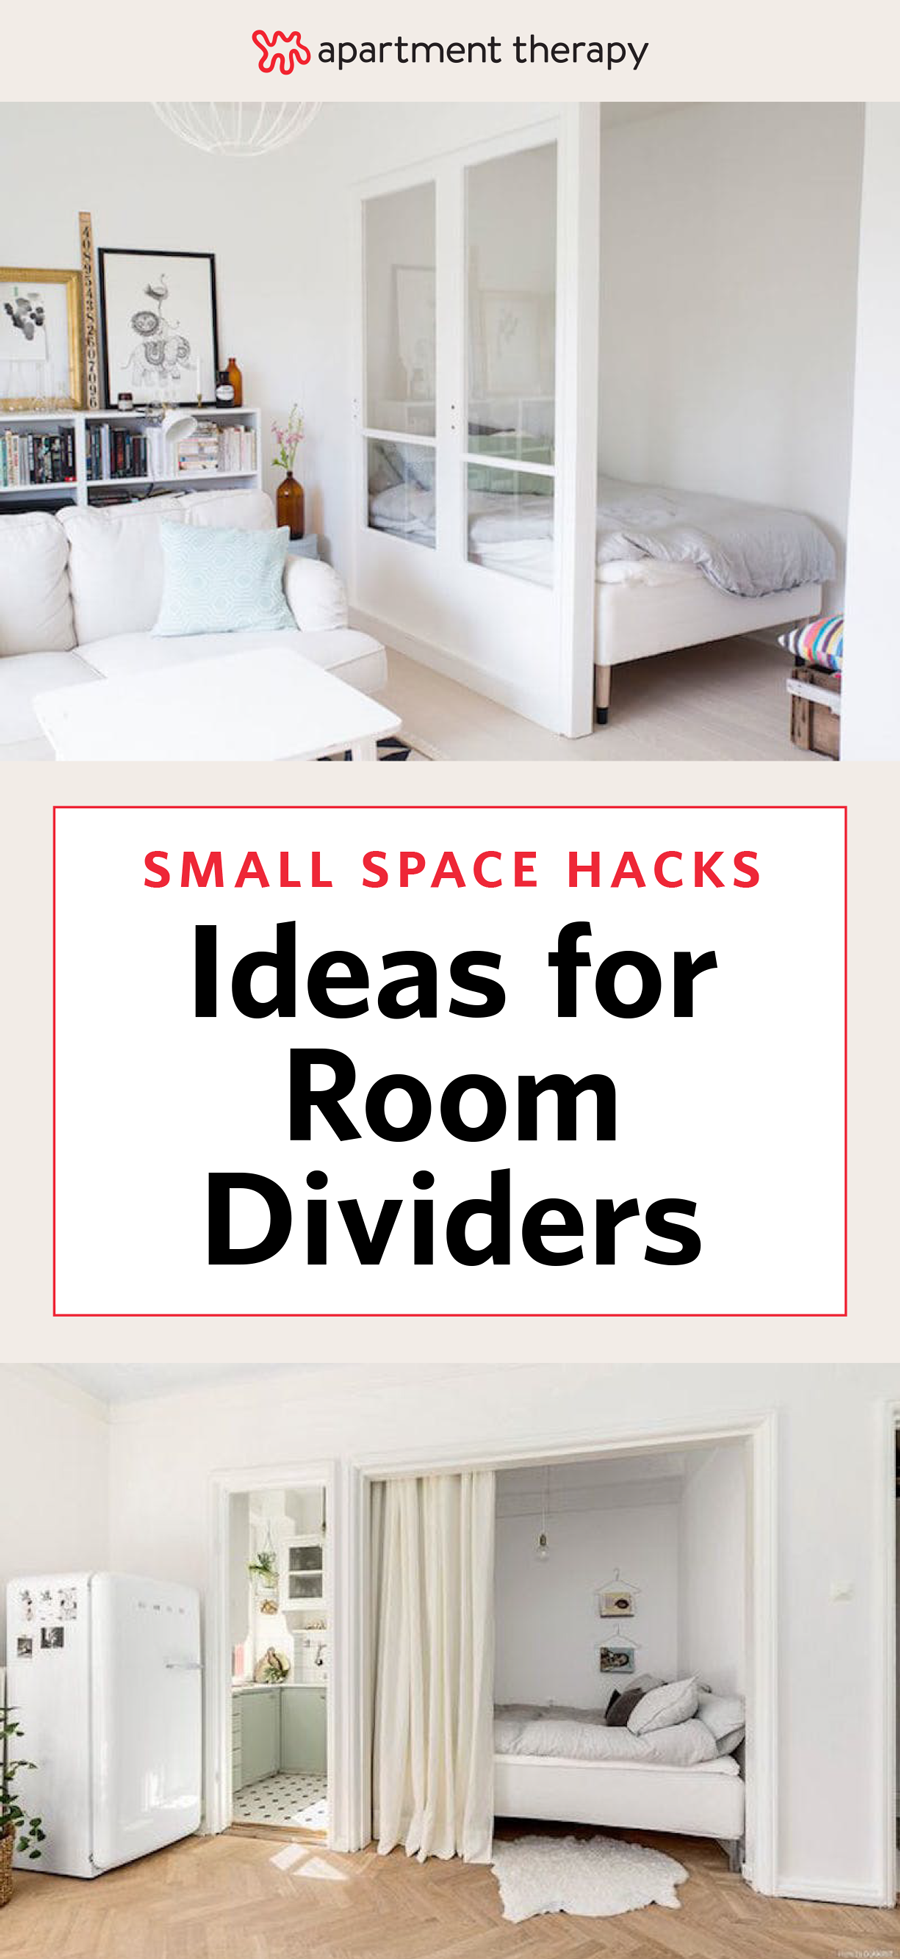 """The challenge: Create a """"bedroom"""" (well, at least a bed nook) in an open-layout studio apartment. Our solution: Choose visual dividers that separate the space, but that don't block sunlight or cut up the square footage of an already tiny home. Presto—your single room will suddenly feel like two (or more.) Here are 11 simple and smart ideas to inspire small-space dwellers:"""